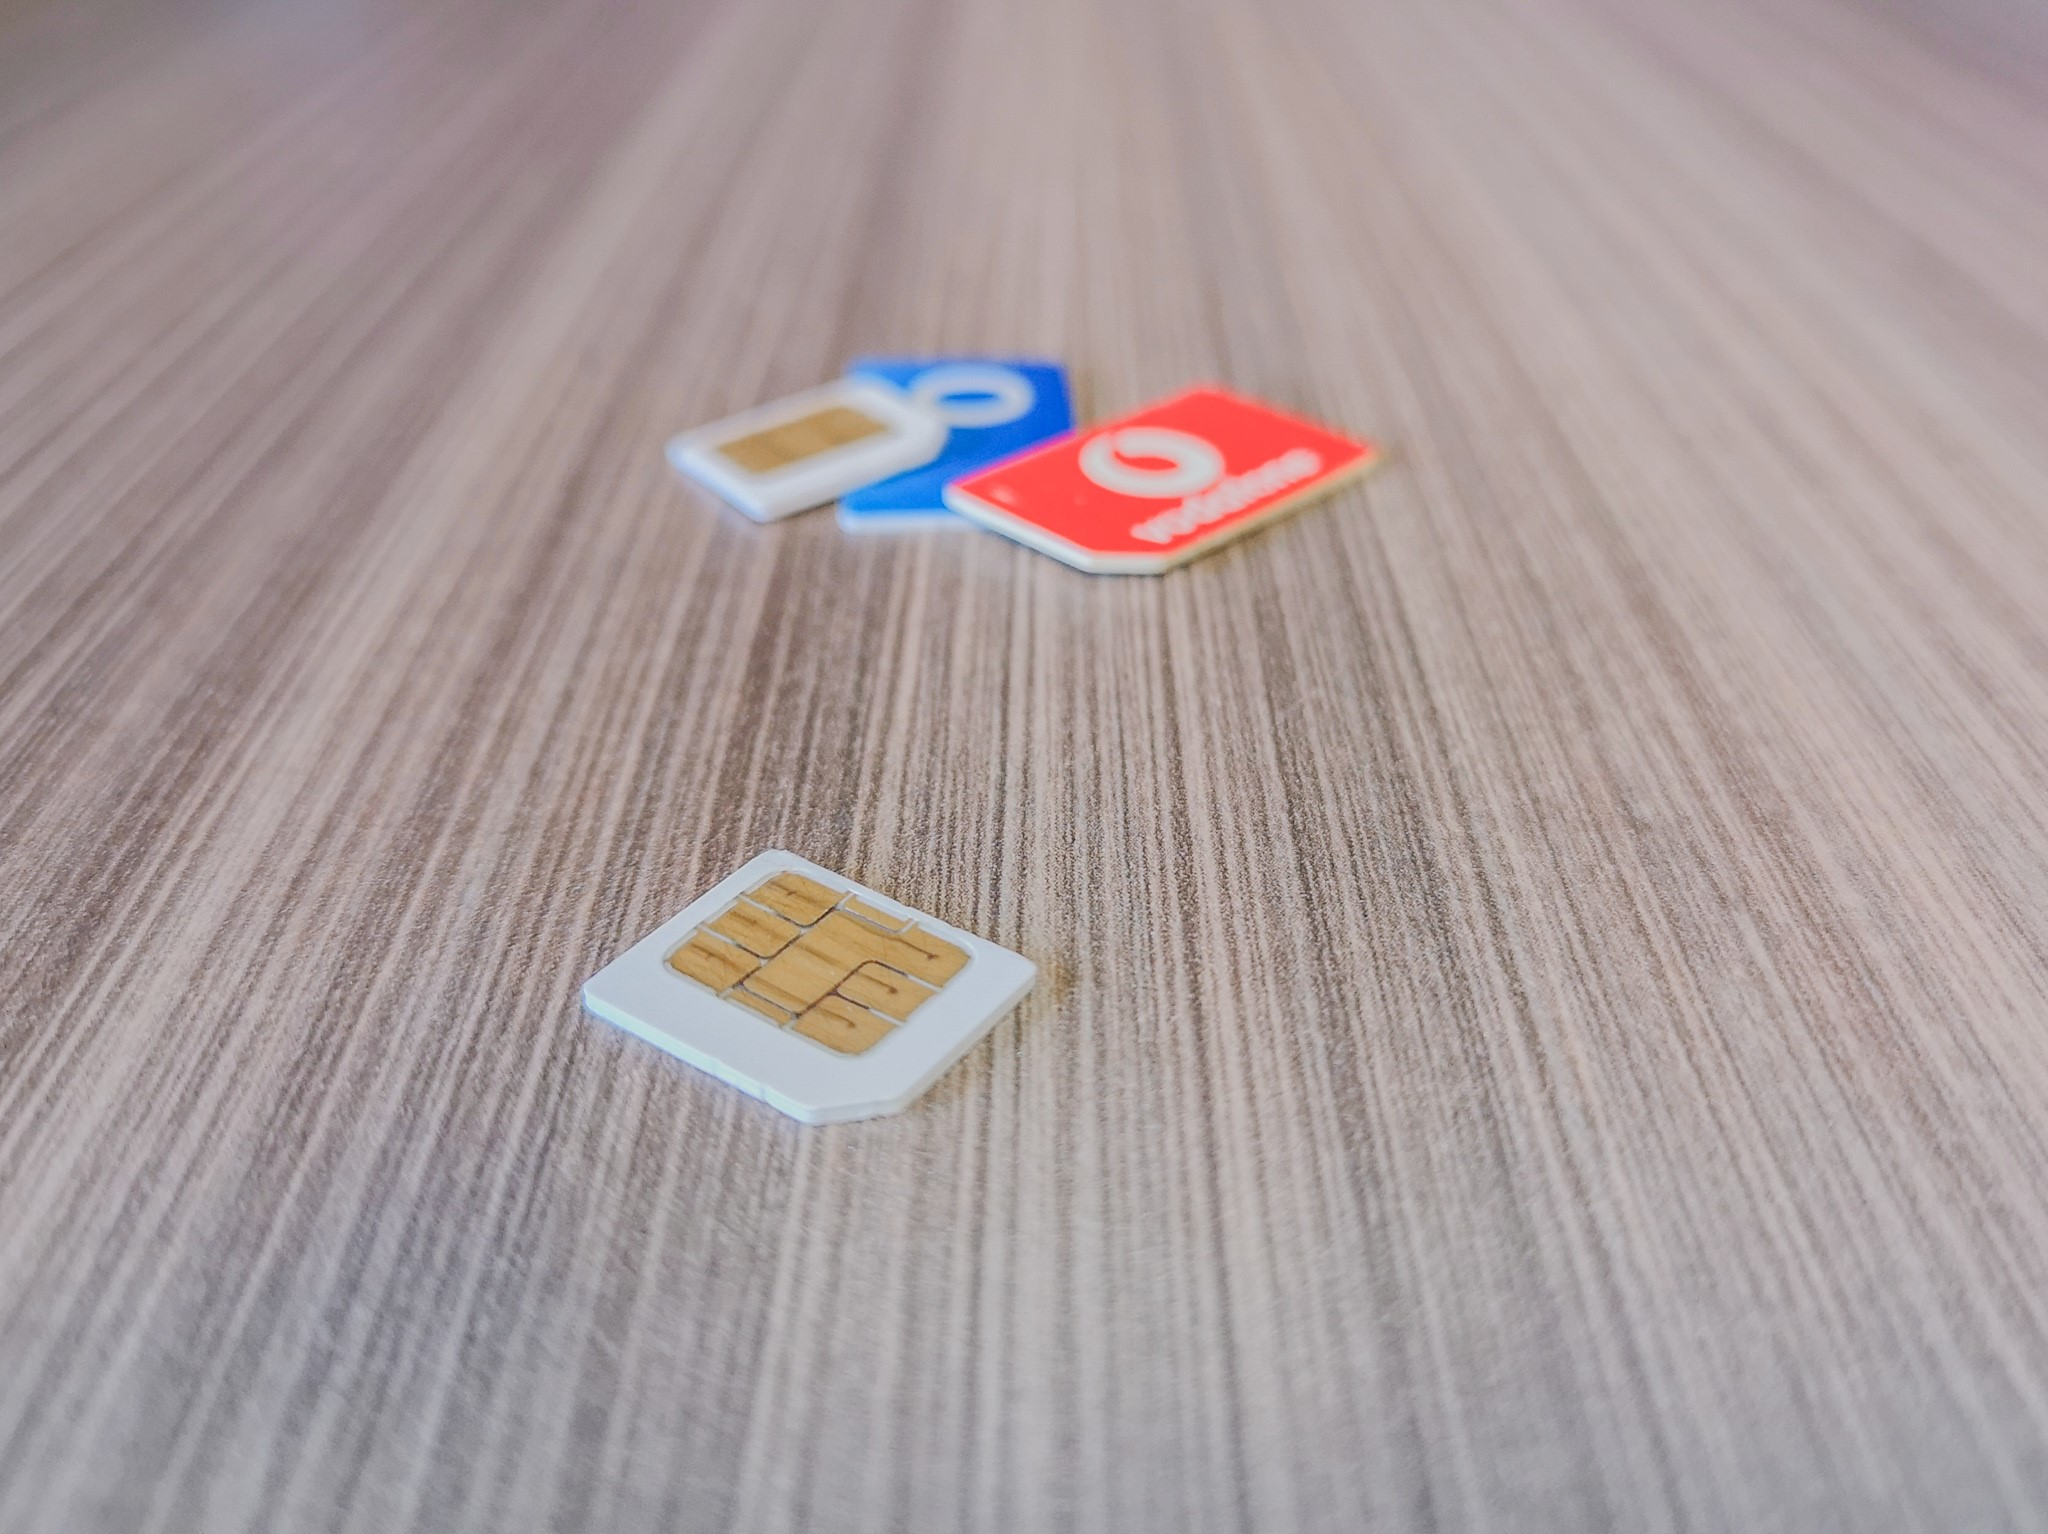 Microsoft Dynamics NAV system rescue for essex based sim card company